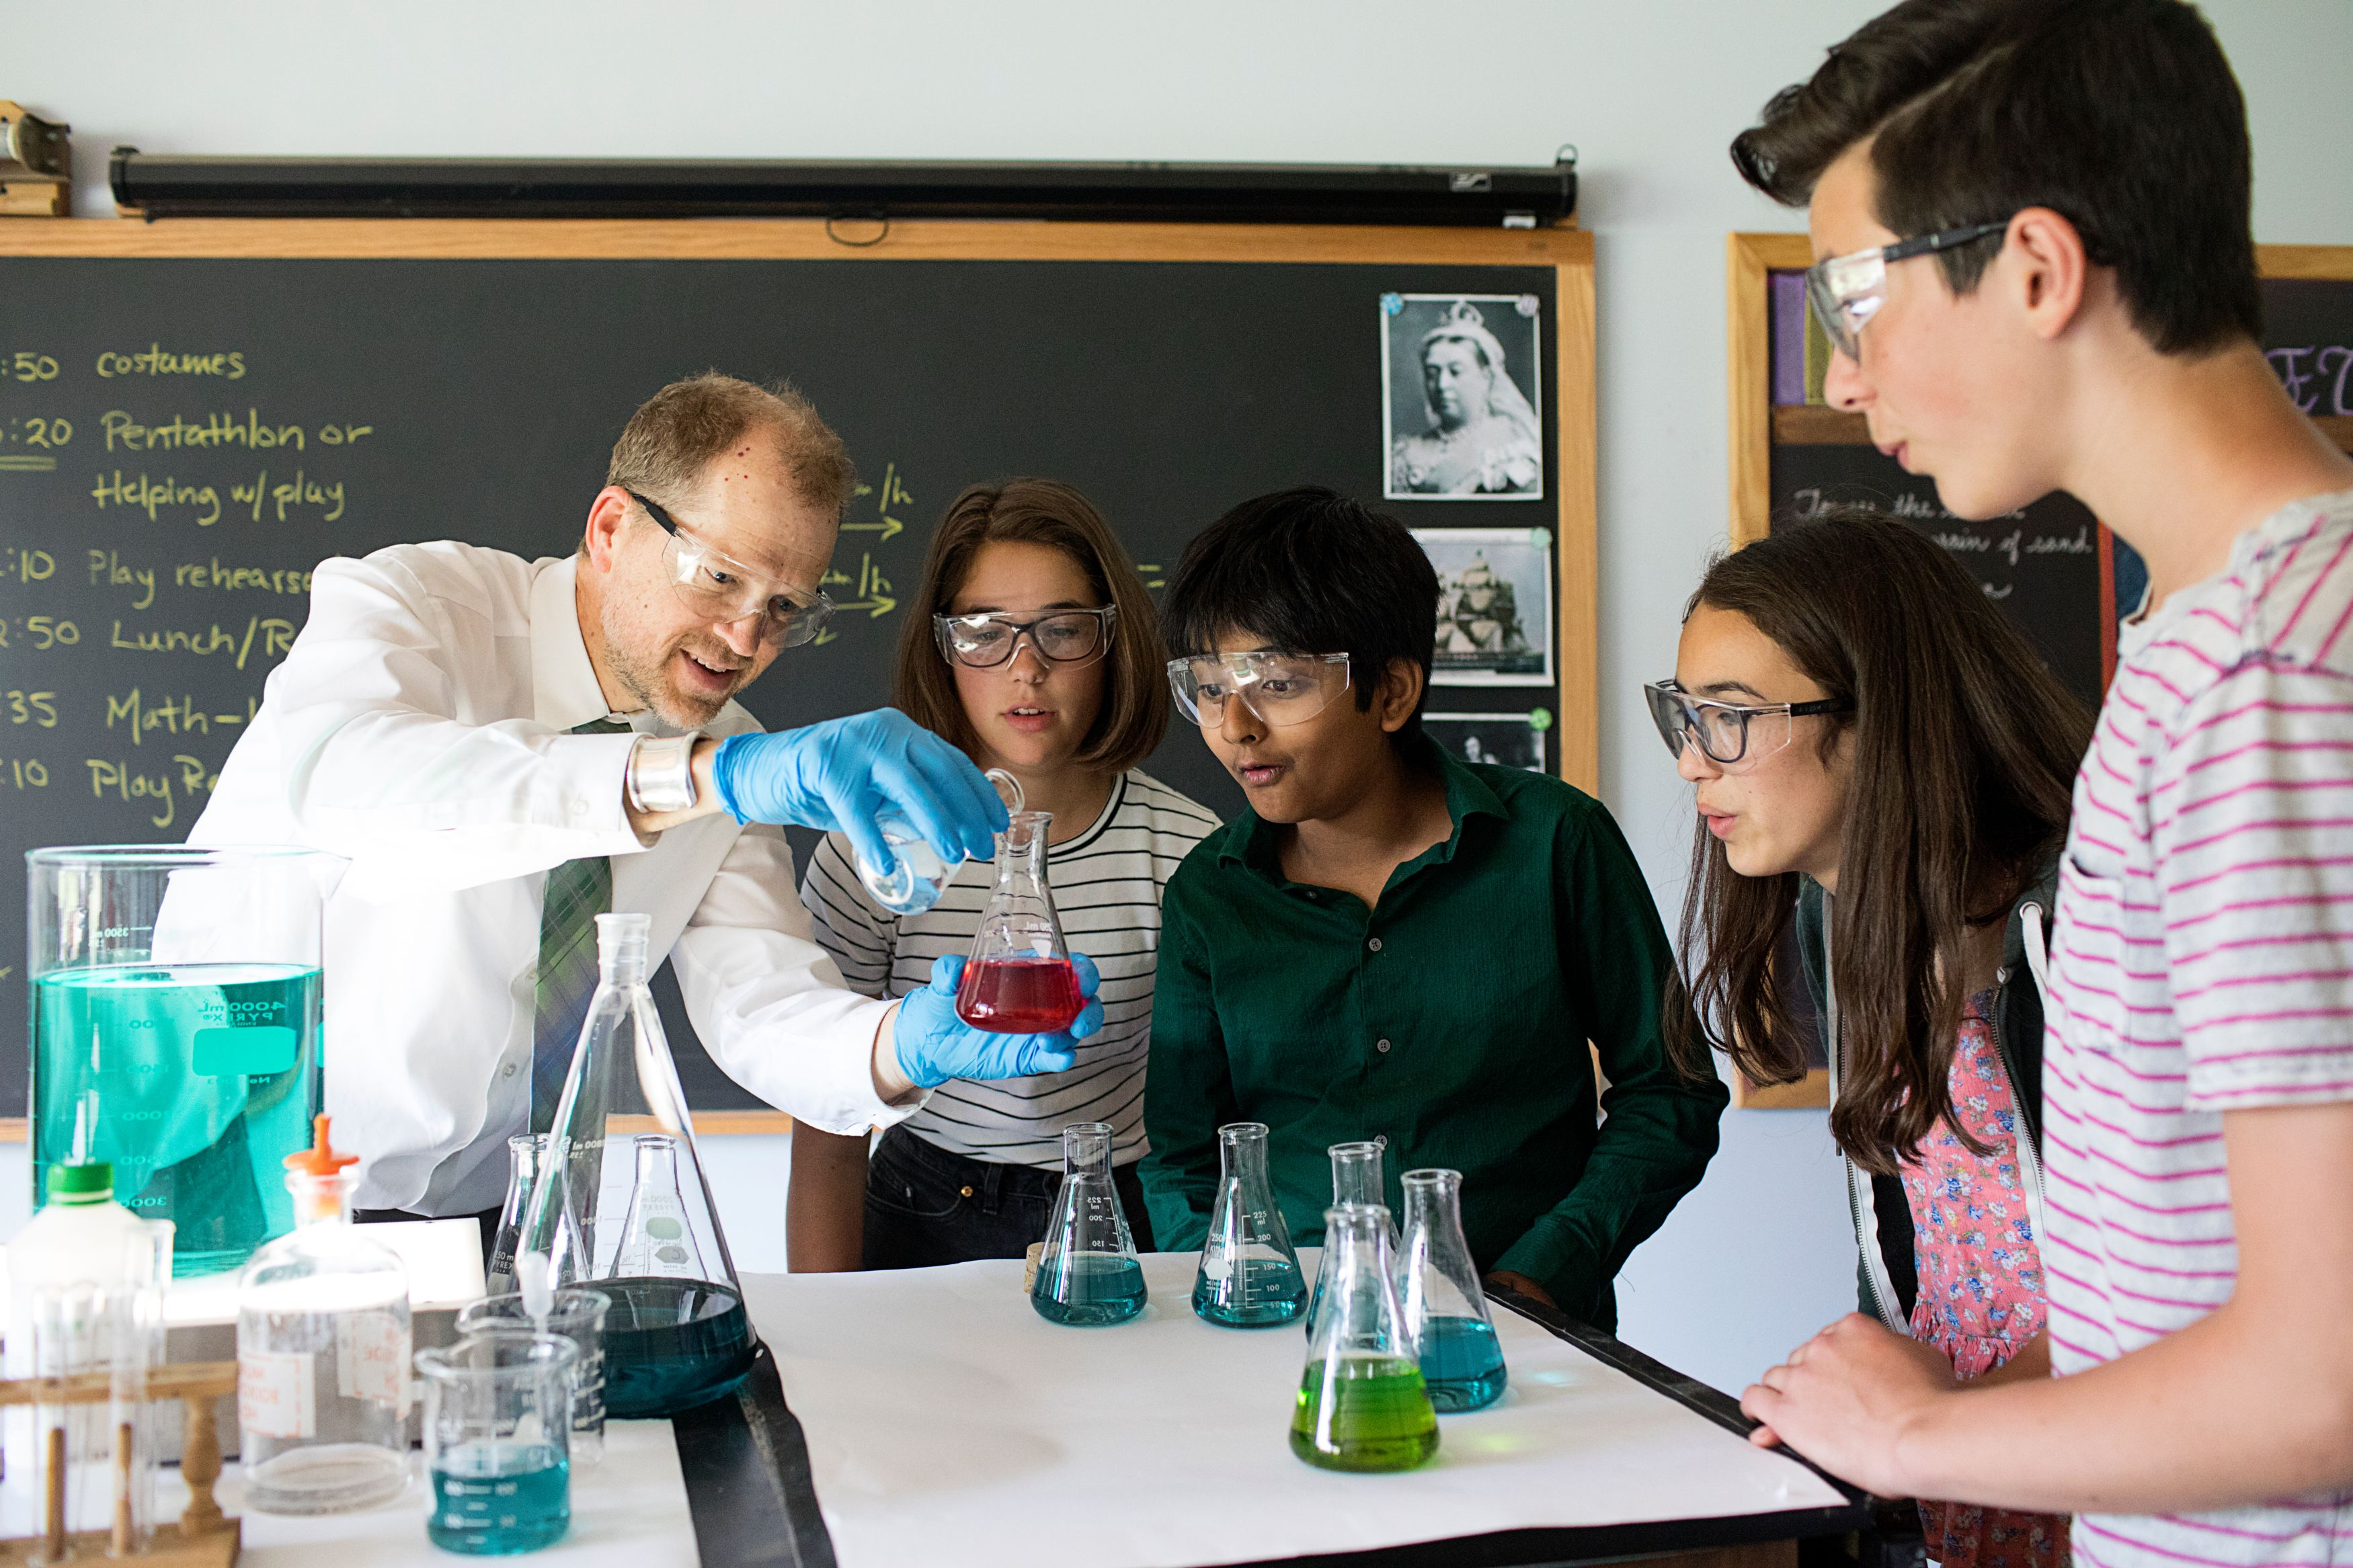 Chemistry Experiment with Teacher and Three Students